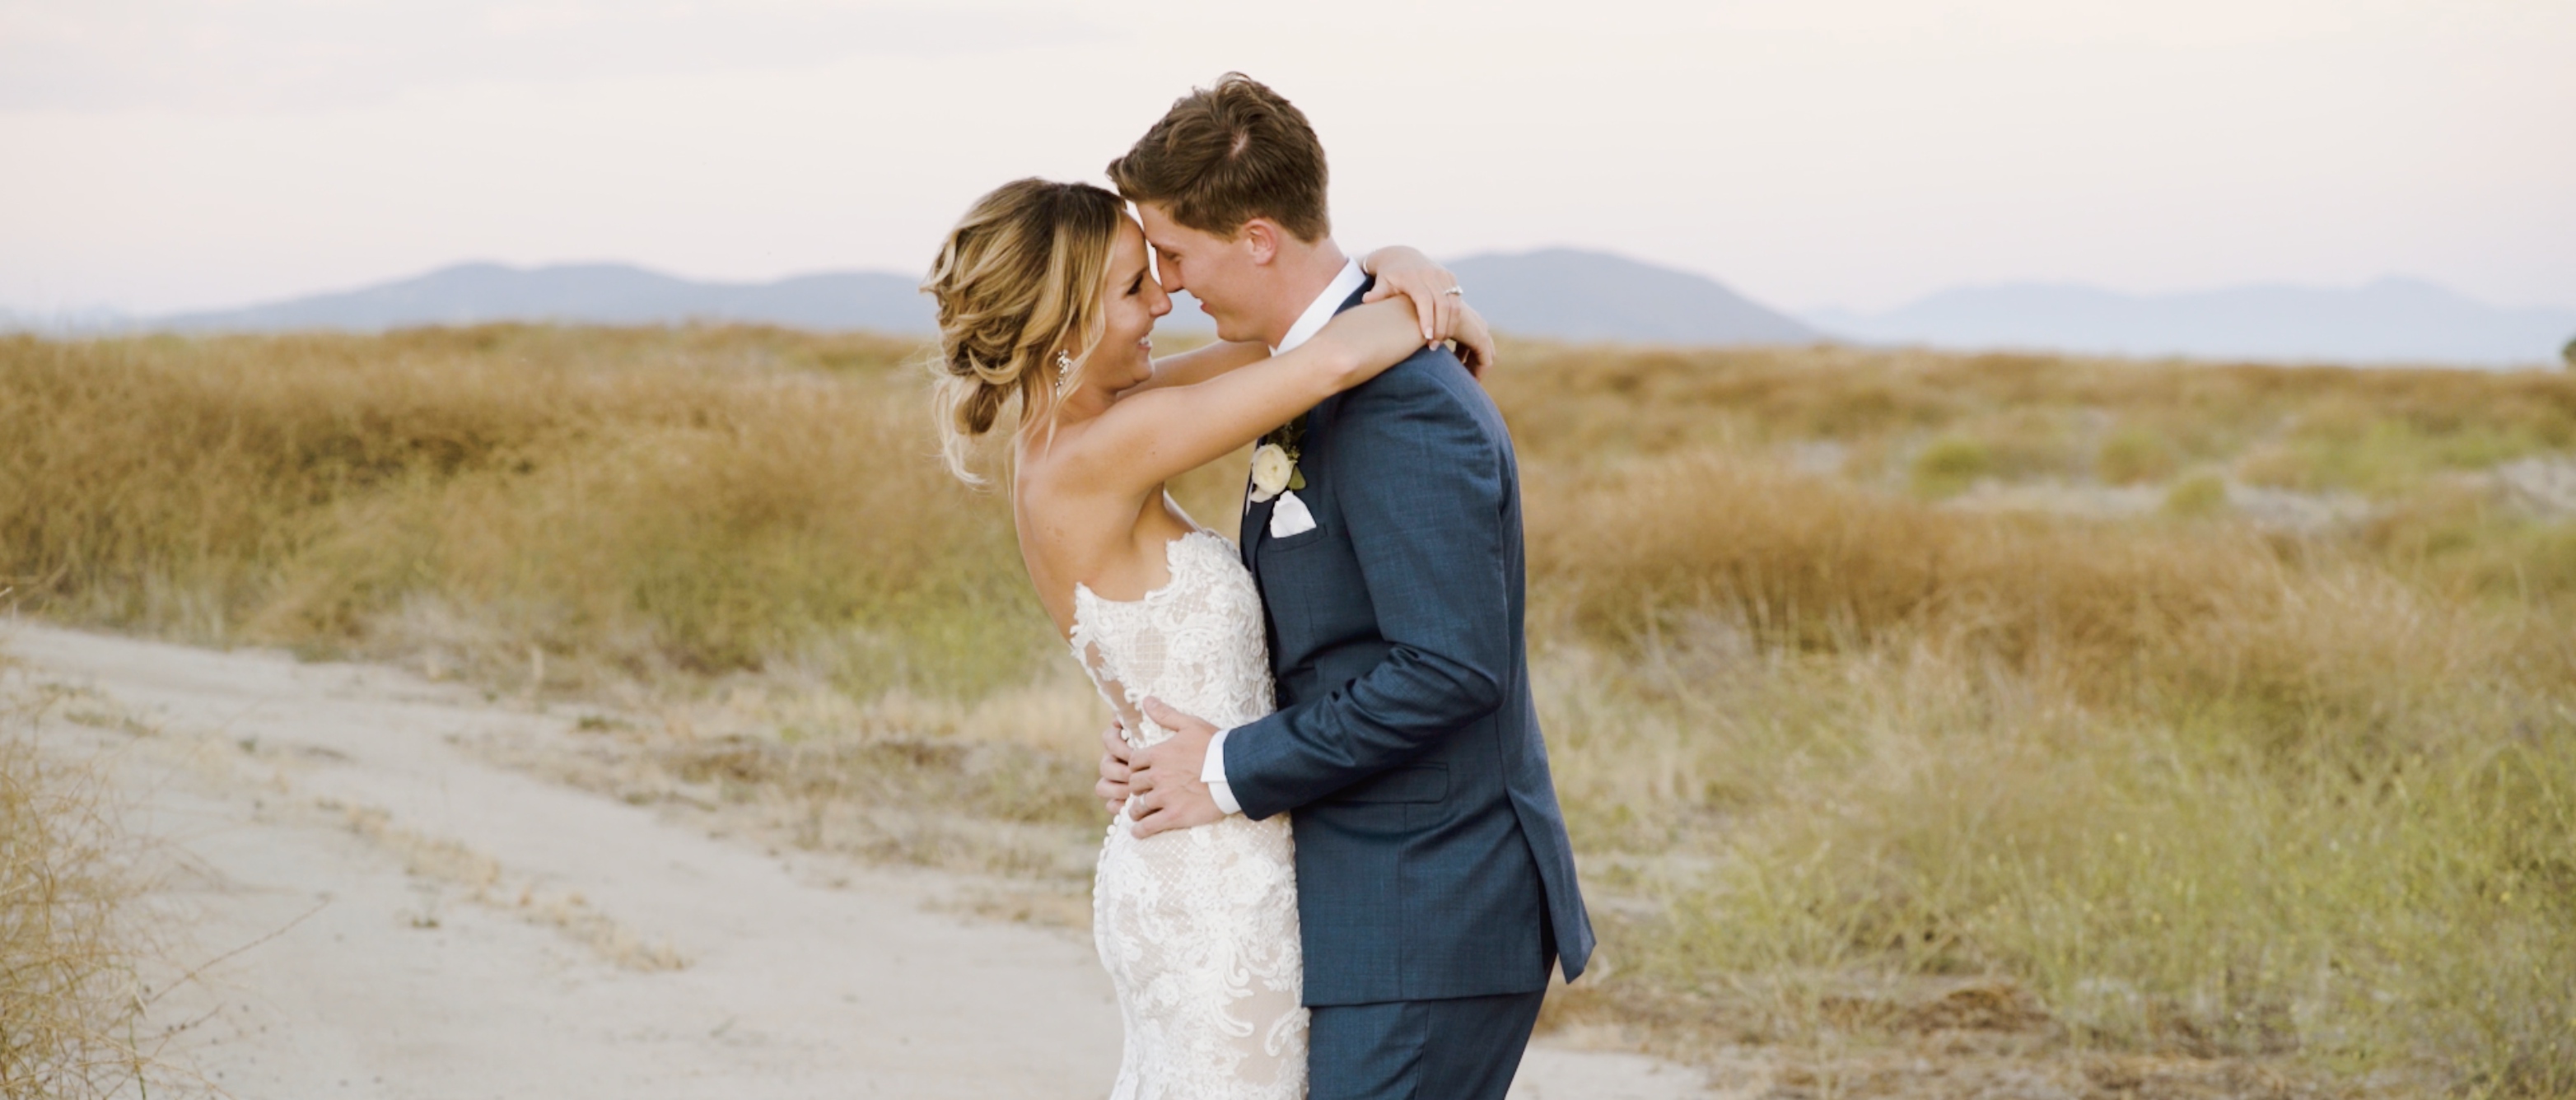 Luke + Lexi | Temecula, California | Callaway Vineyard & Winery